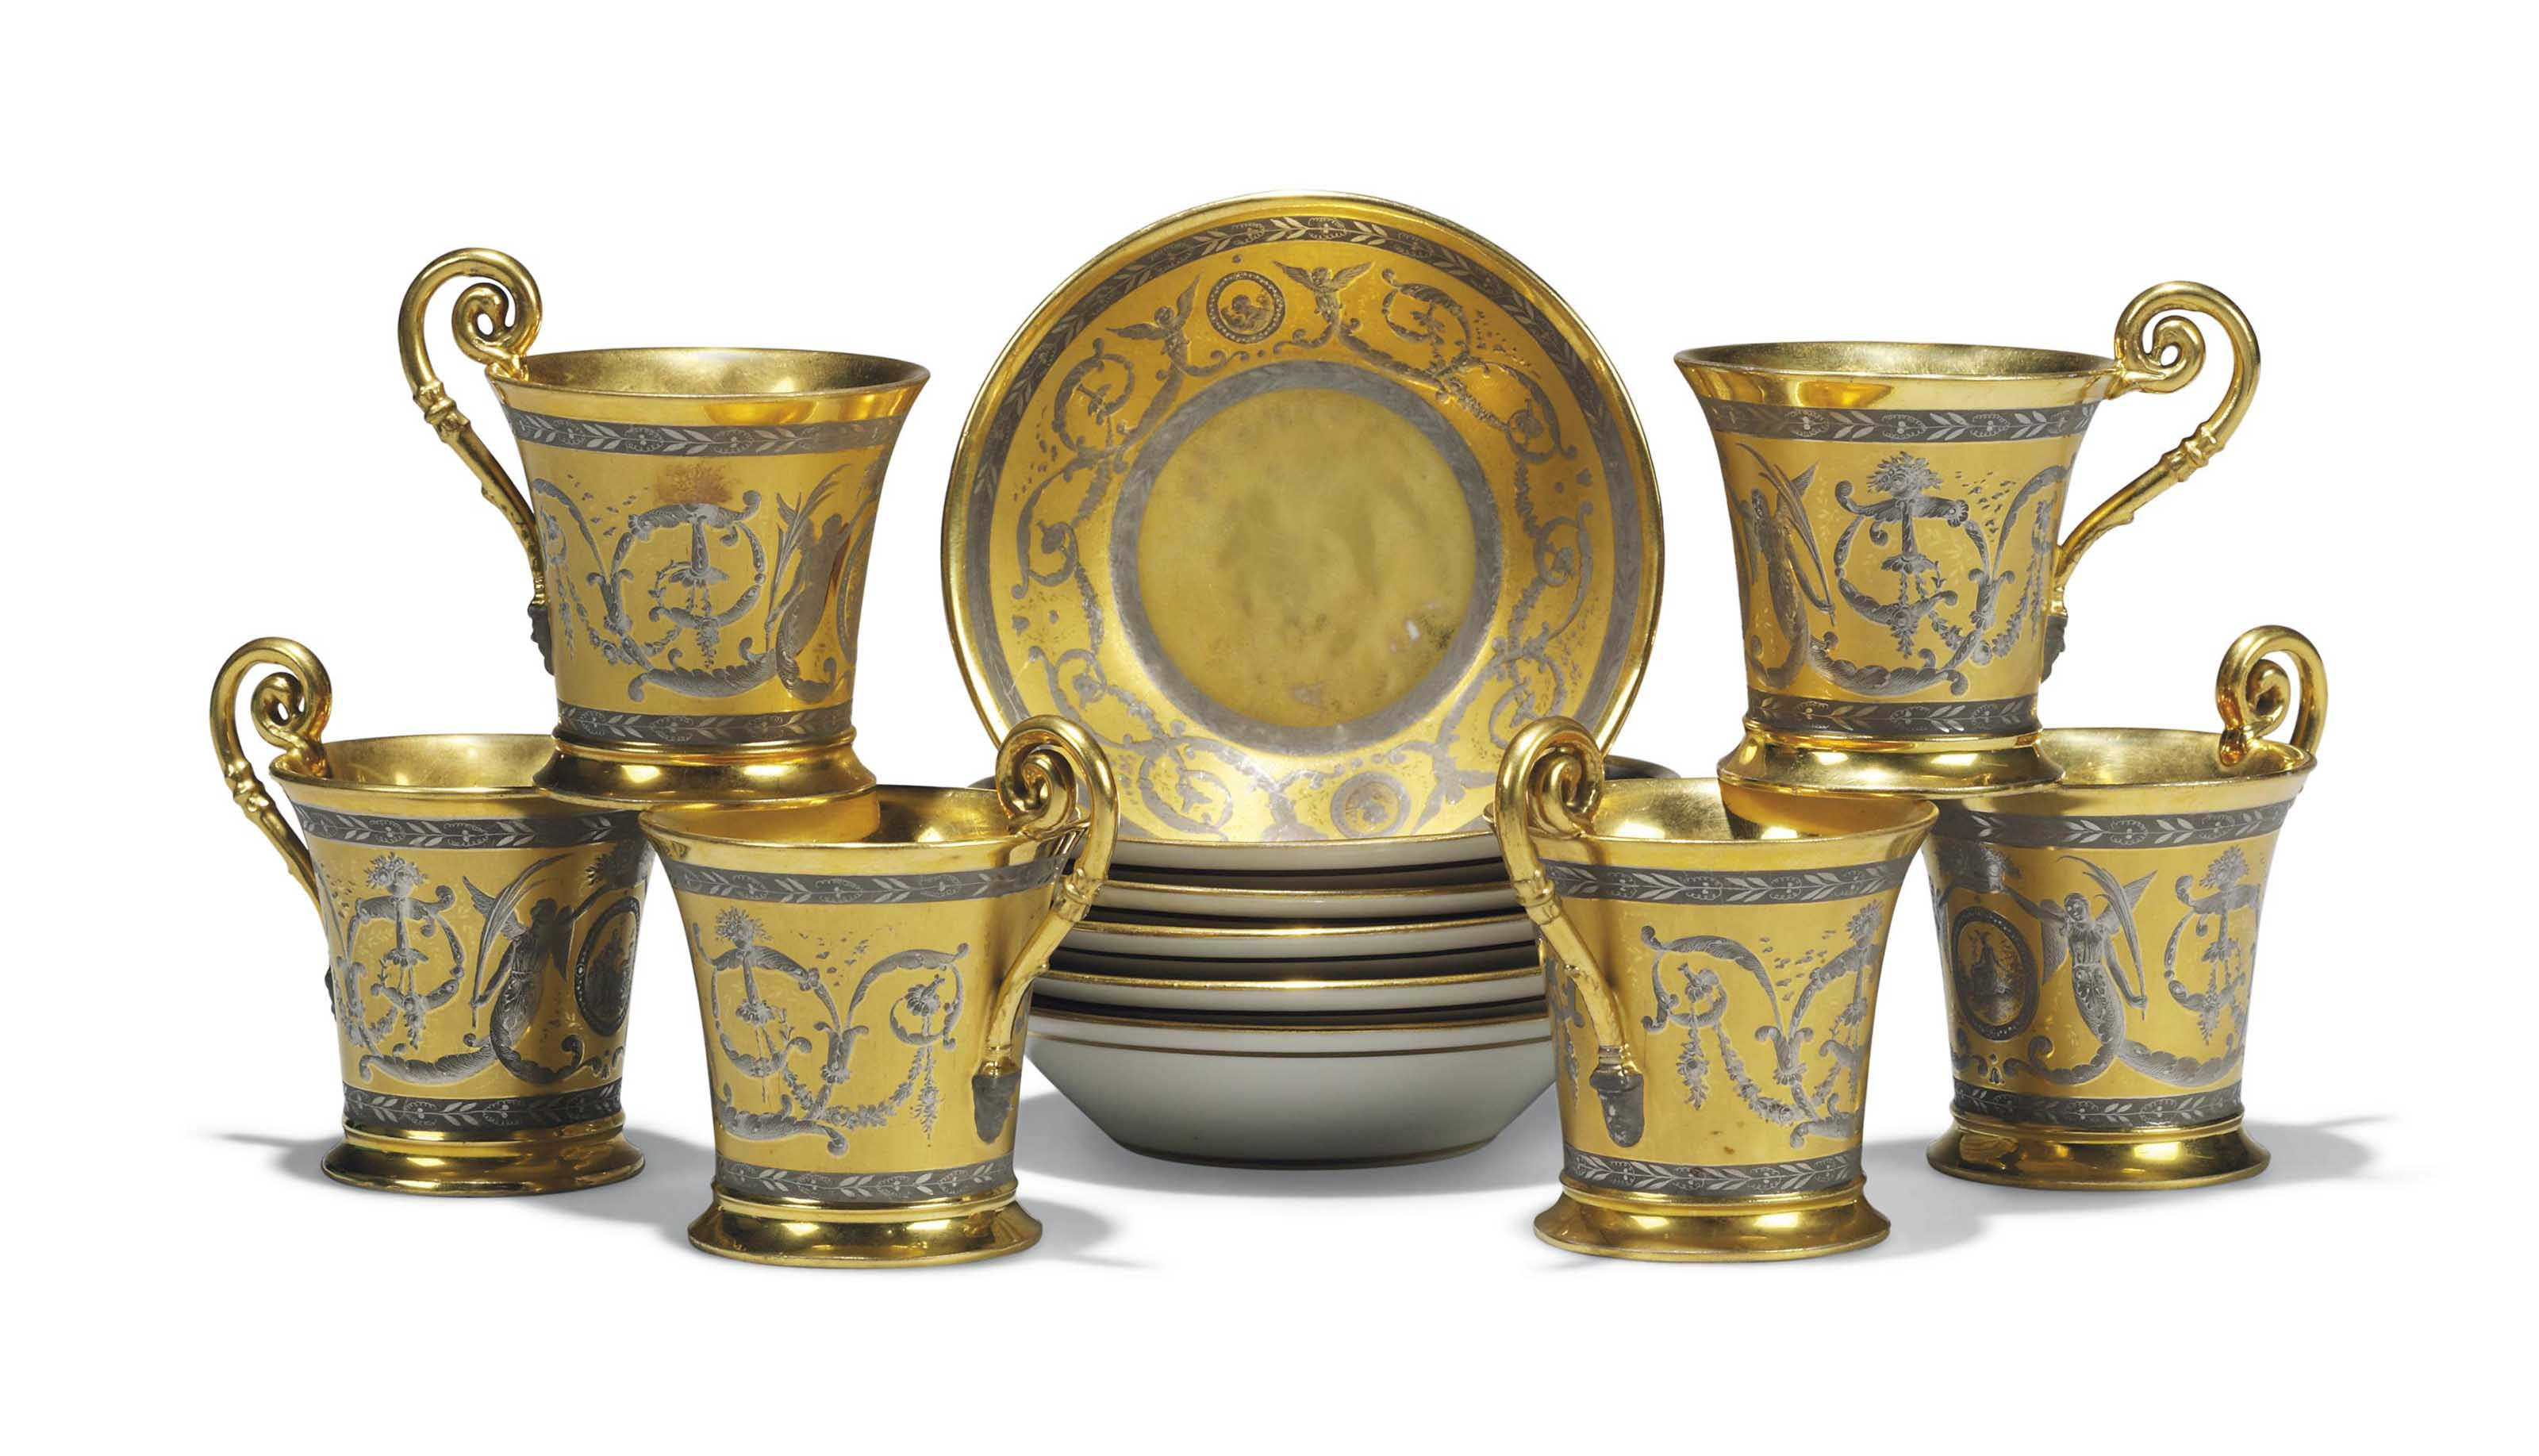 SIX NYMPHENBURG GILT AND PLATINUM CABINET CUPS AND SAUCERS